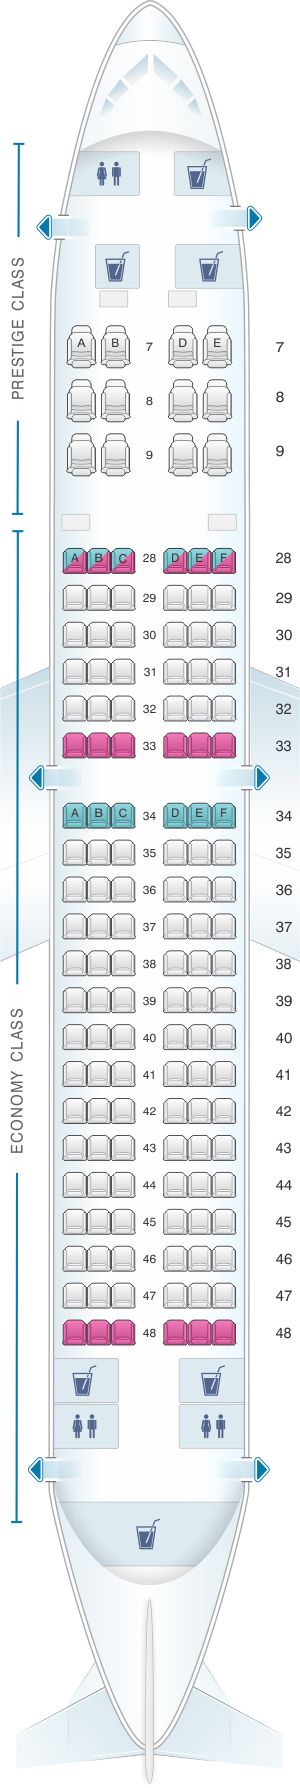 Seat map for Korean Air Boeing B737 800 138PAX